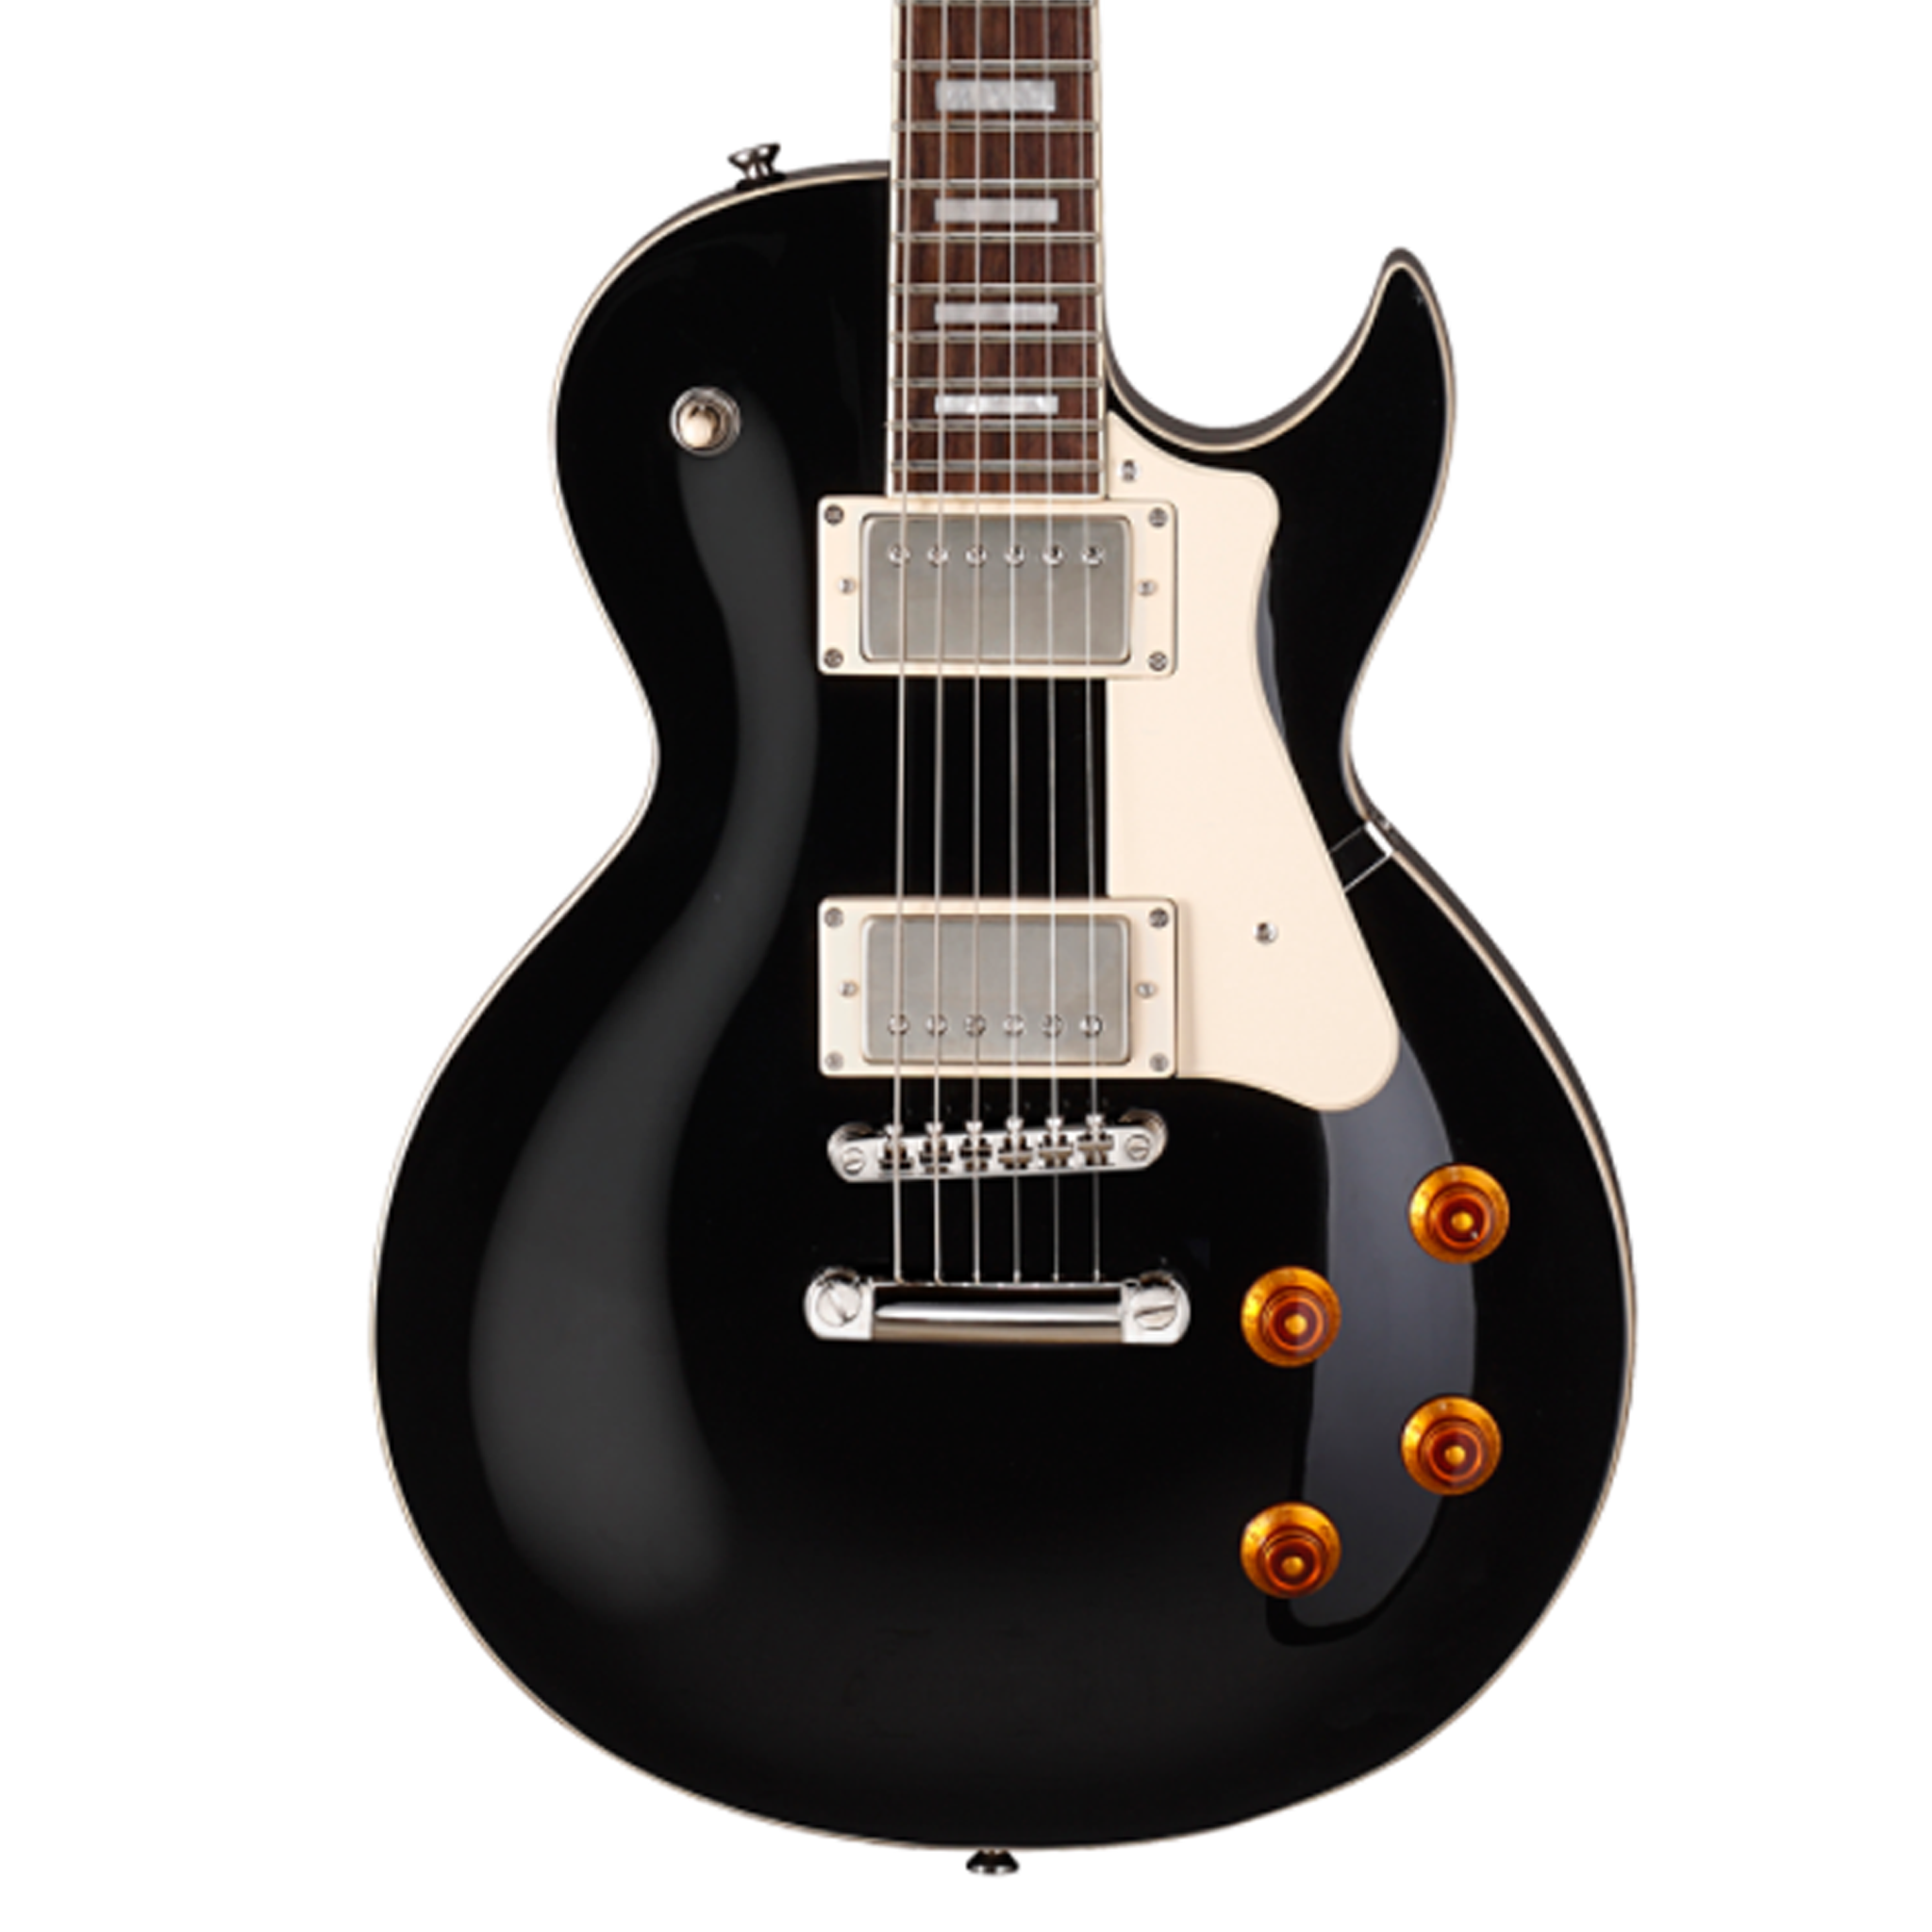 Cort CR200 Electric Guitar (Black)